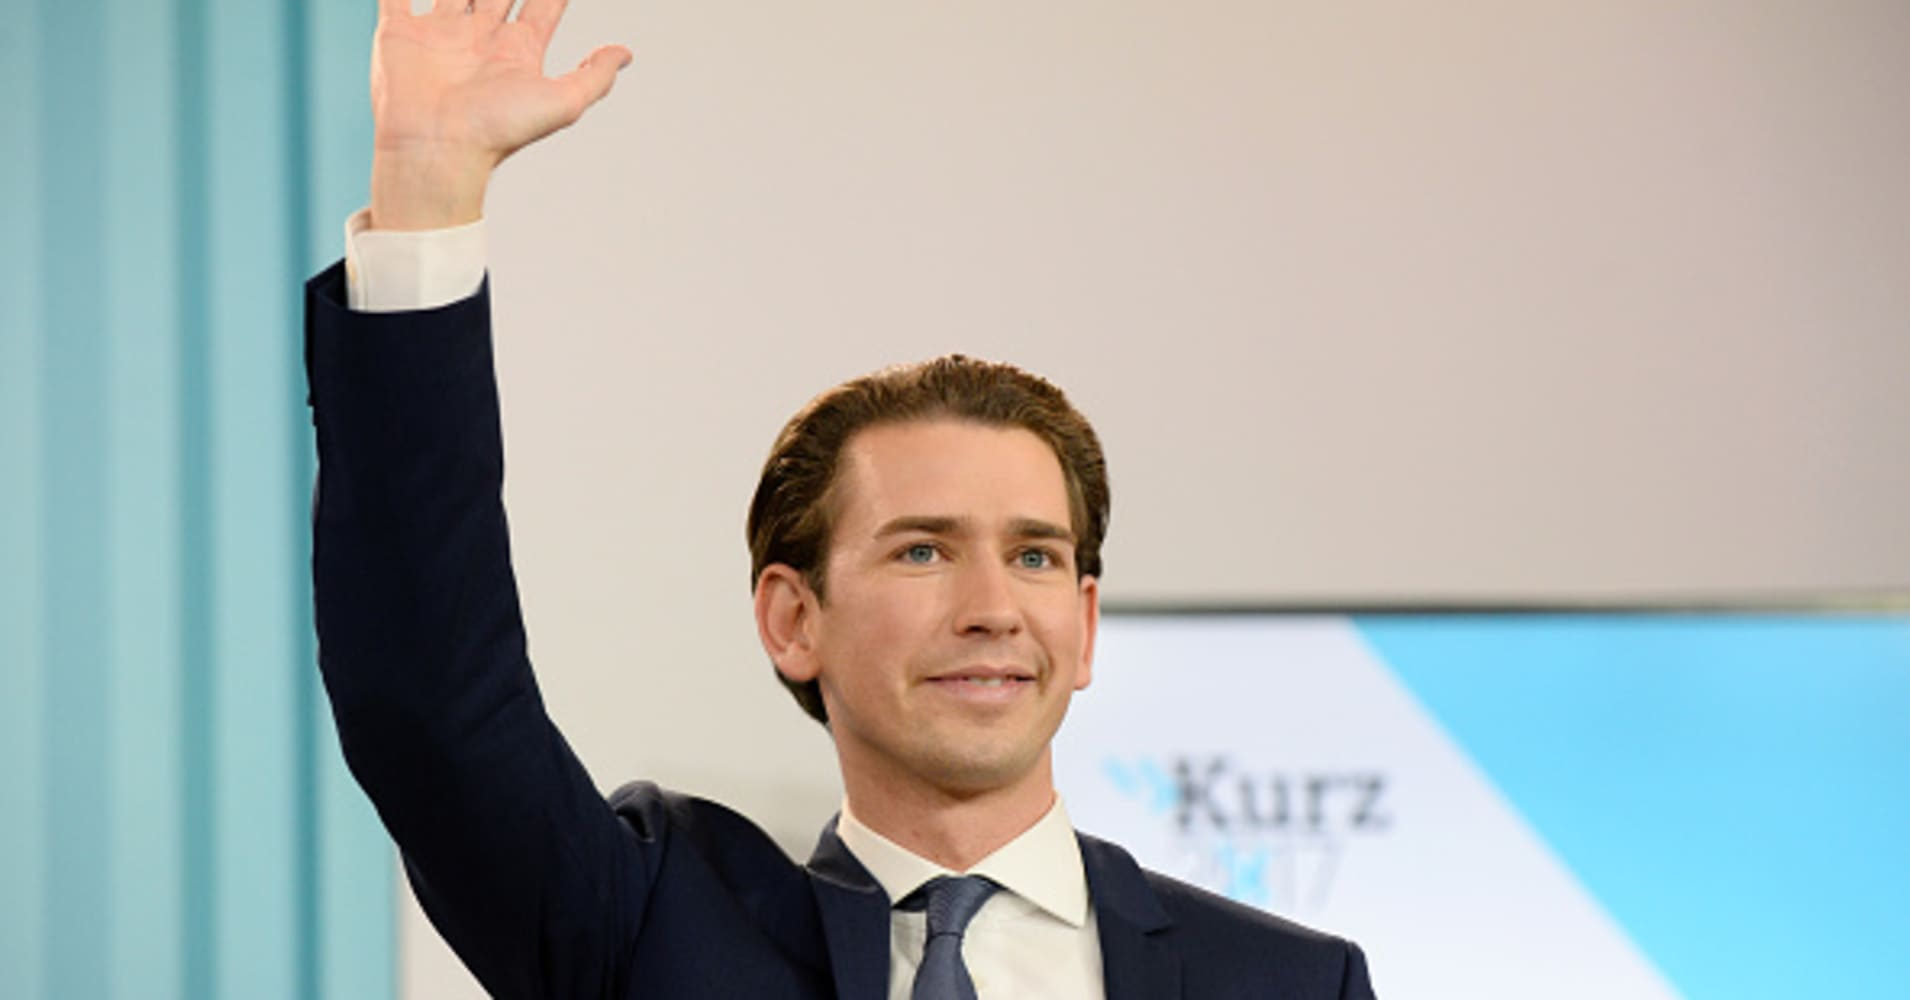 Austrian millennial Sebastian Kurz set to become the world's youngest leader